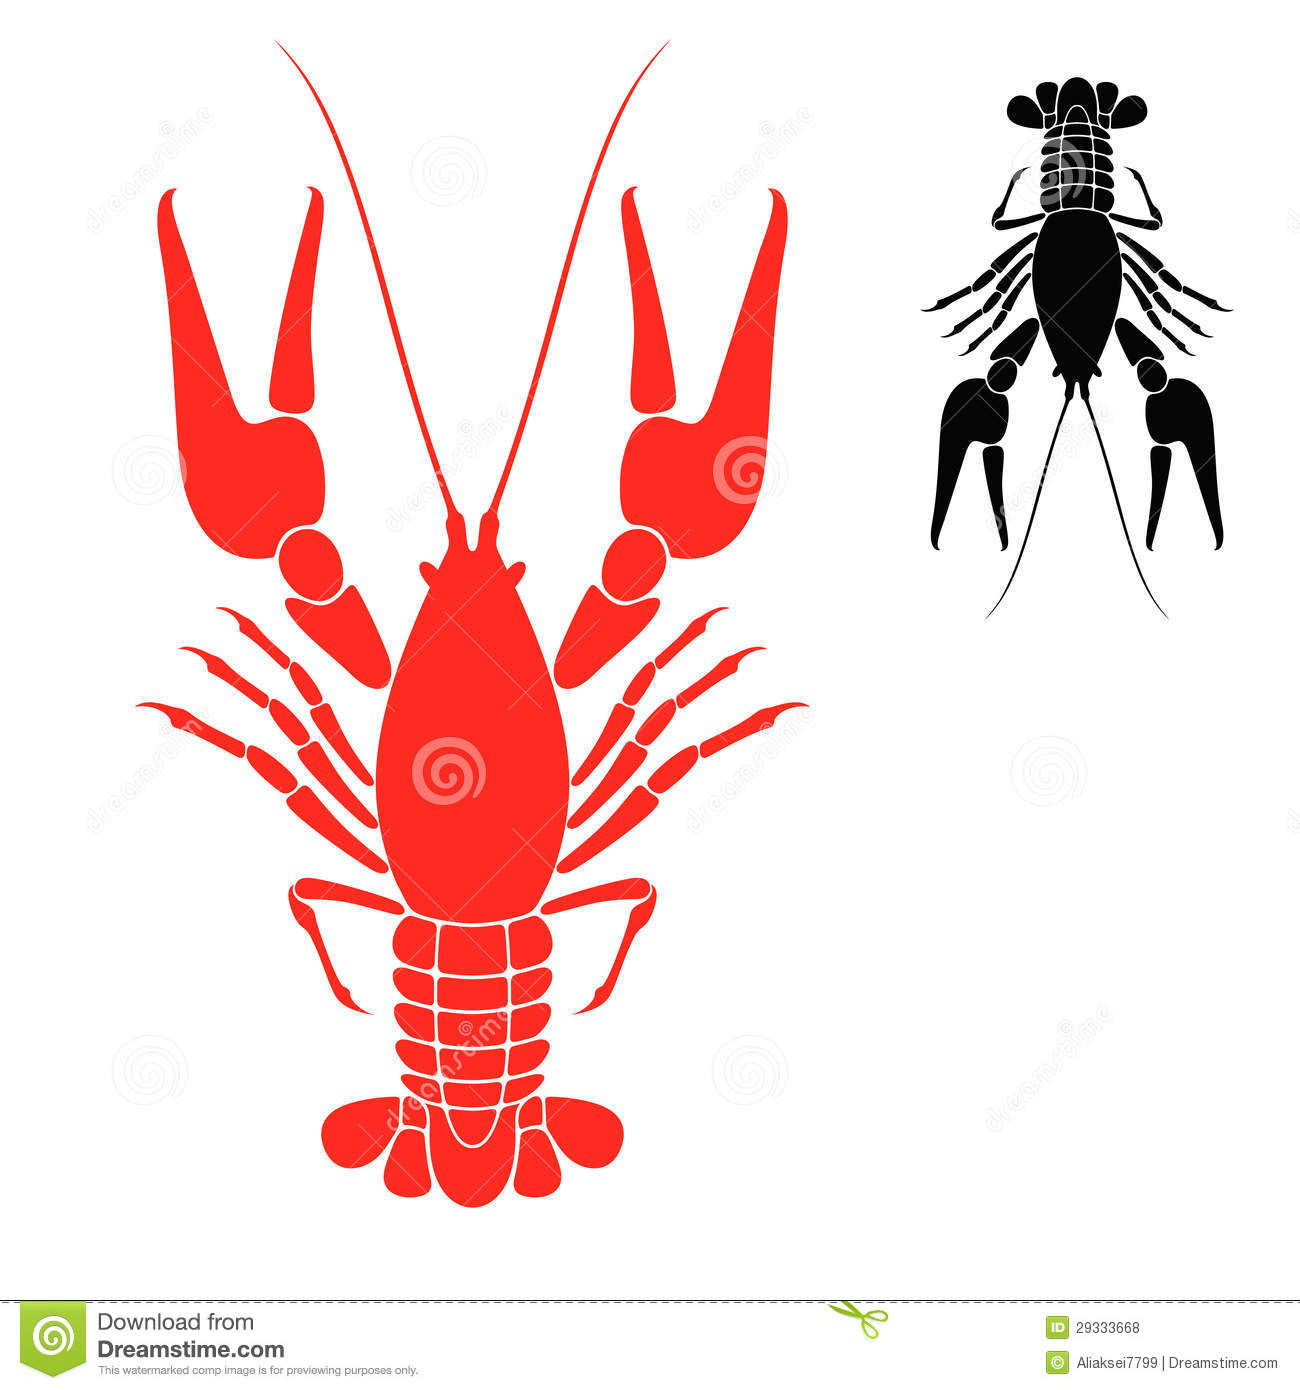 crayfish logo royalty free stock photos image 29333668 crawfish clip art border crawfish clip art images